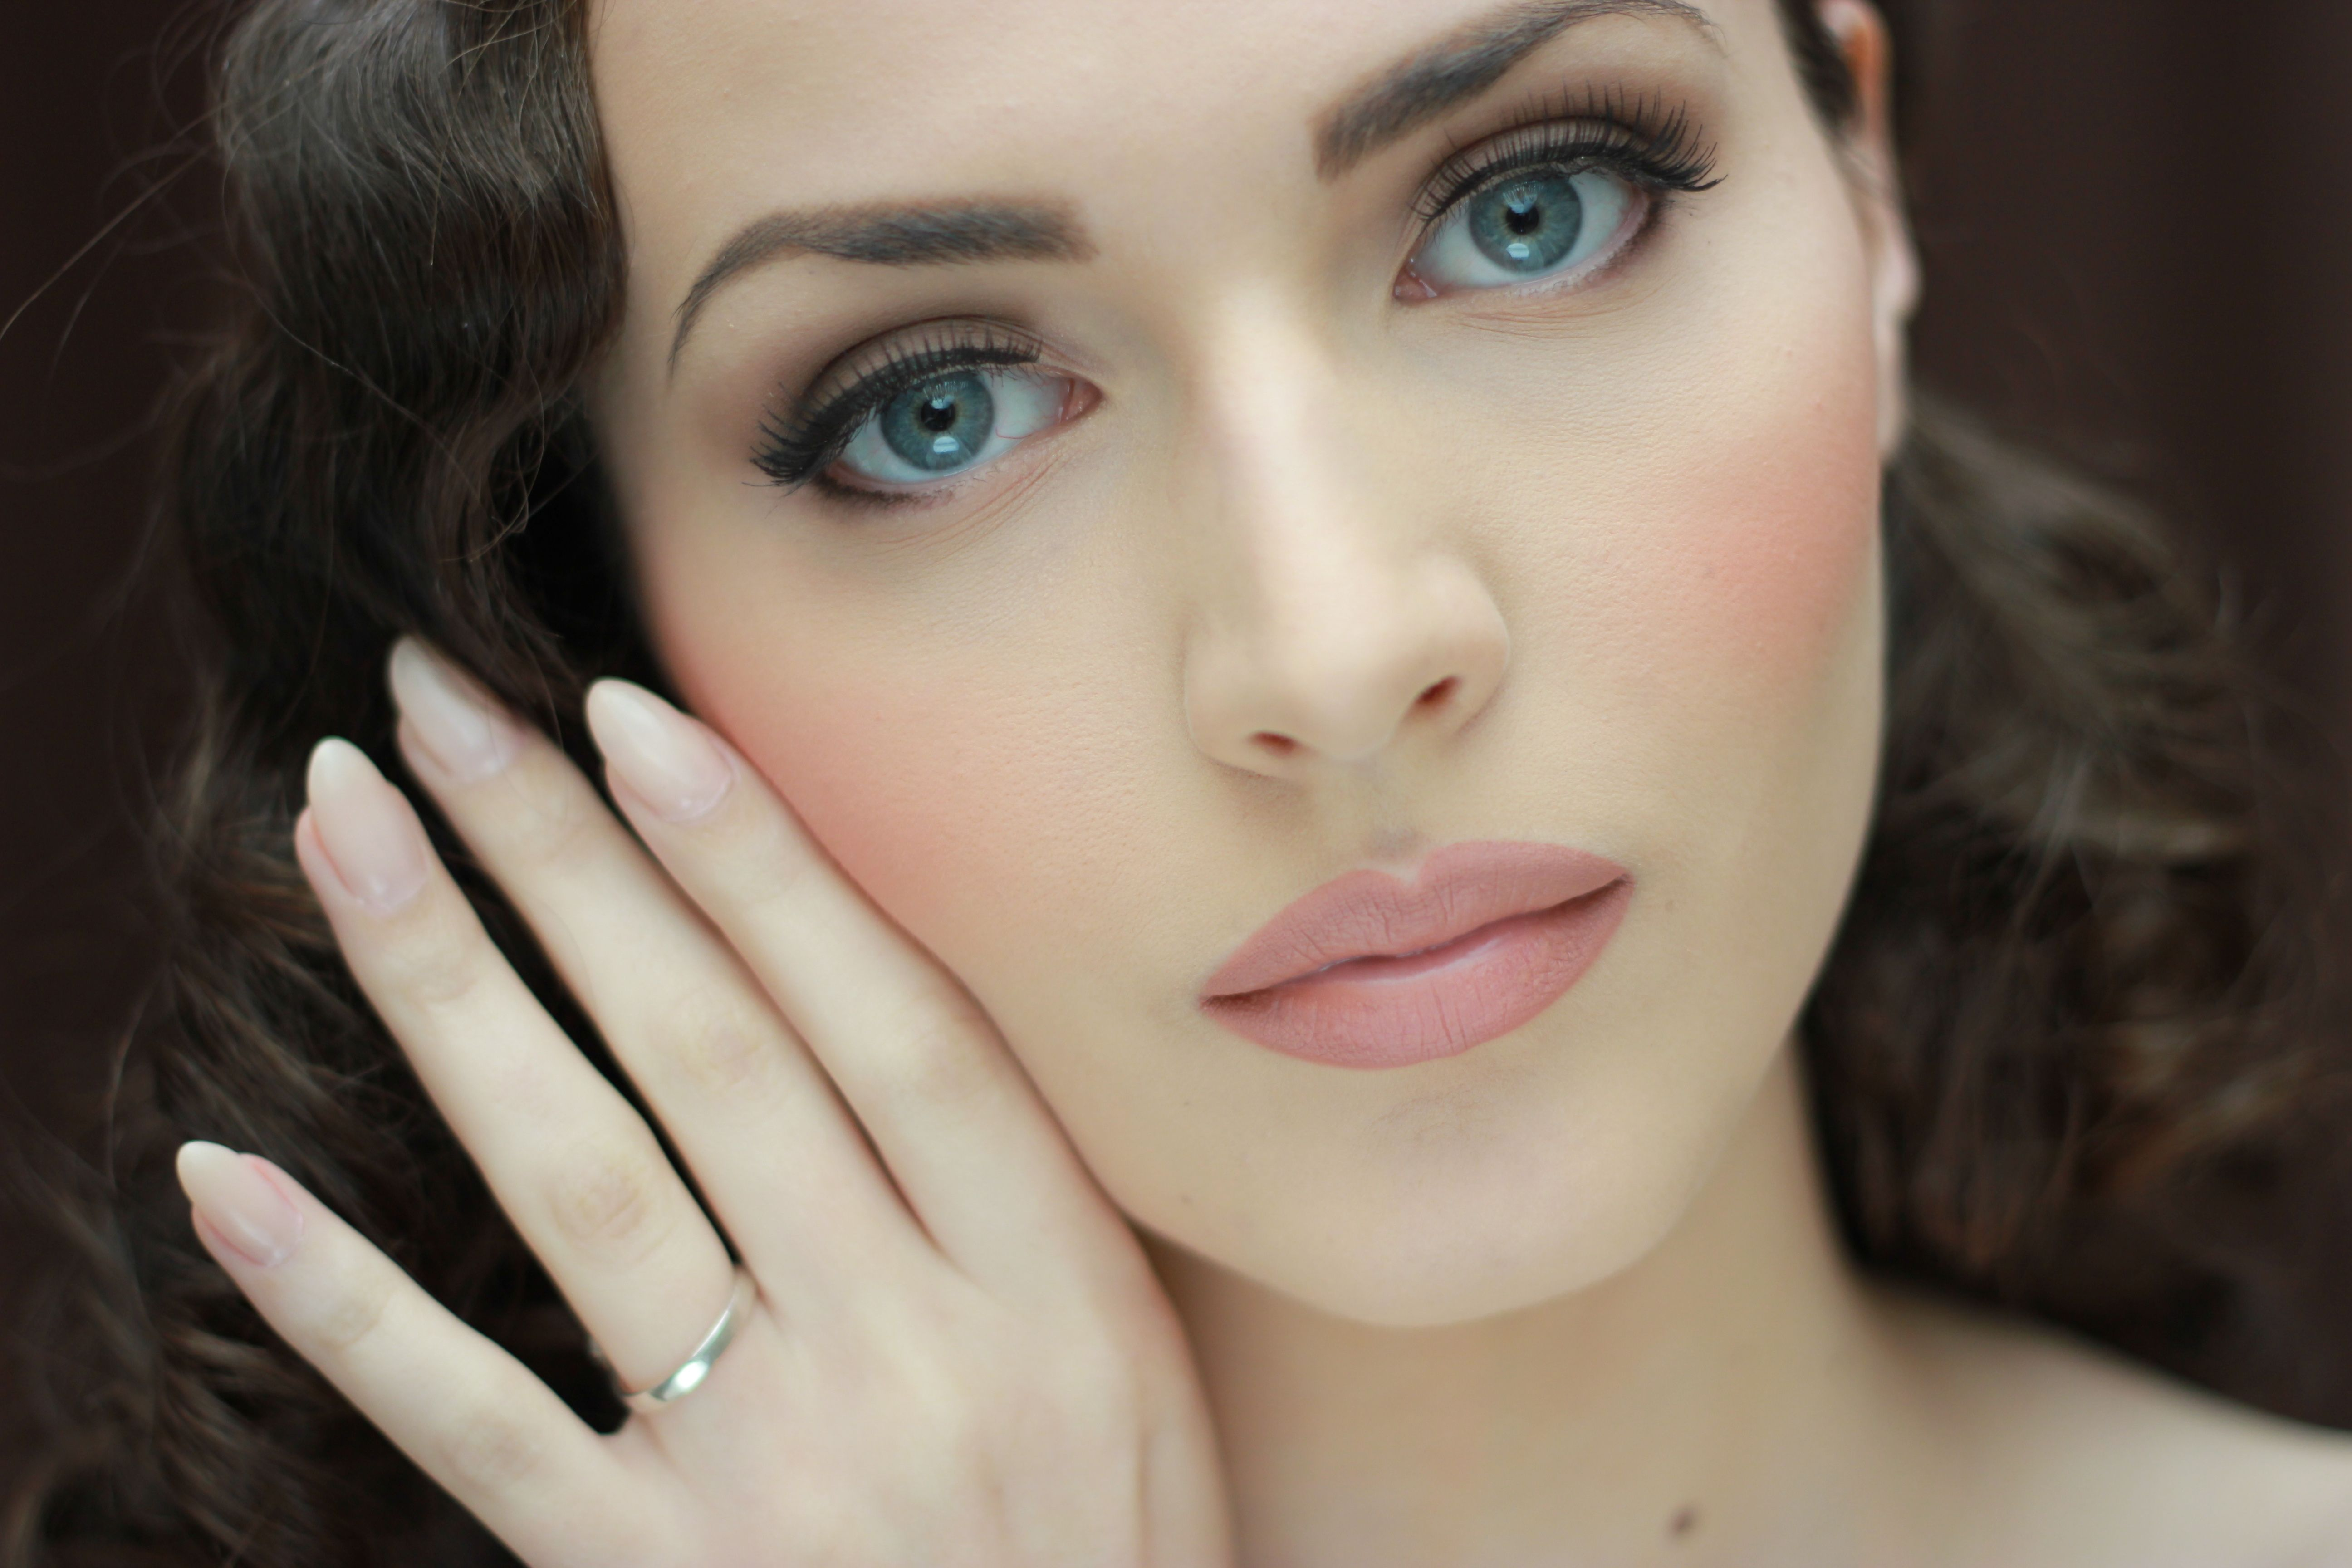 Step Out Feeling Looking Beautiful Naturally Our Makeup Artists Highlight Your Beauty With Subtle Tone Pale Skin Makeup Brunette Makeup Dark Hair Pale Skin